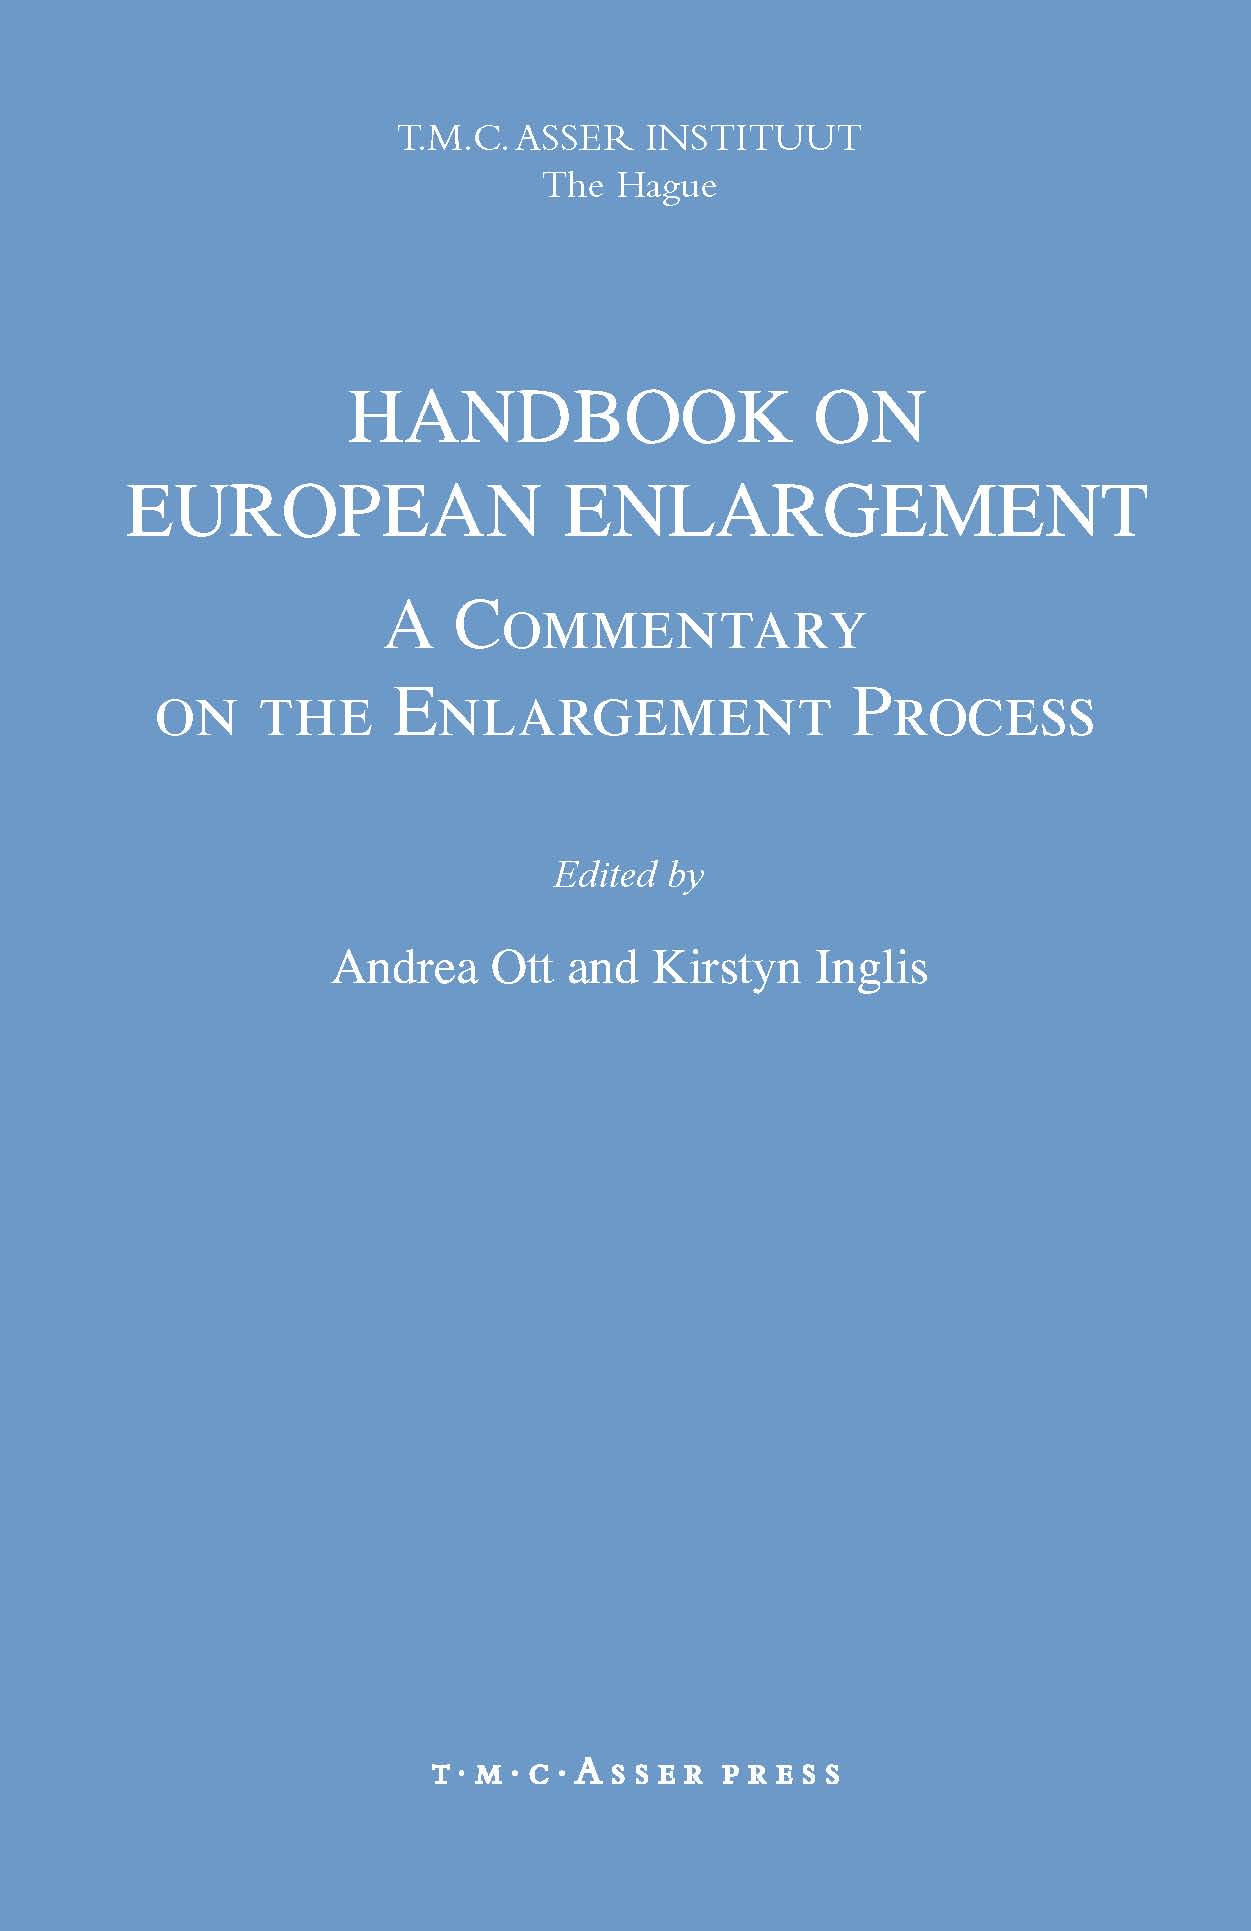 Handbook on European Enlargement - A Commentary on the Enlargement Process